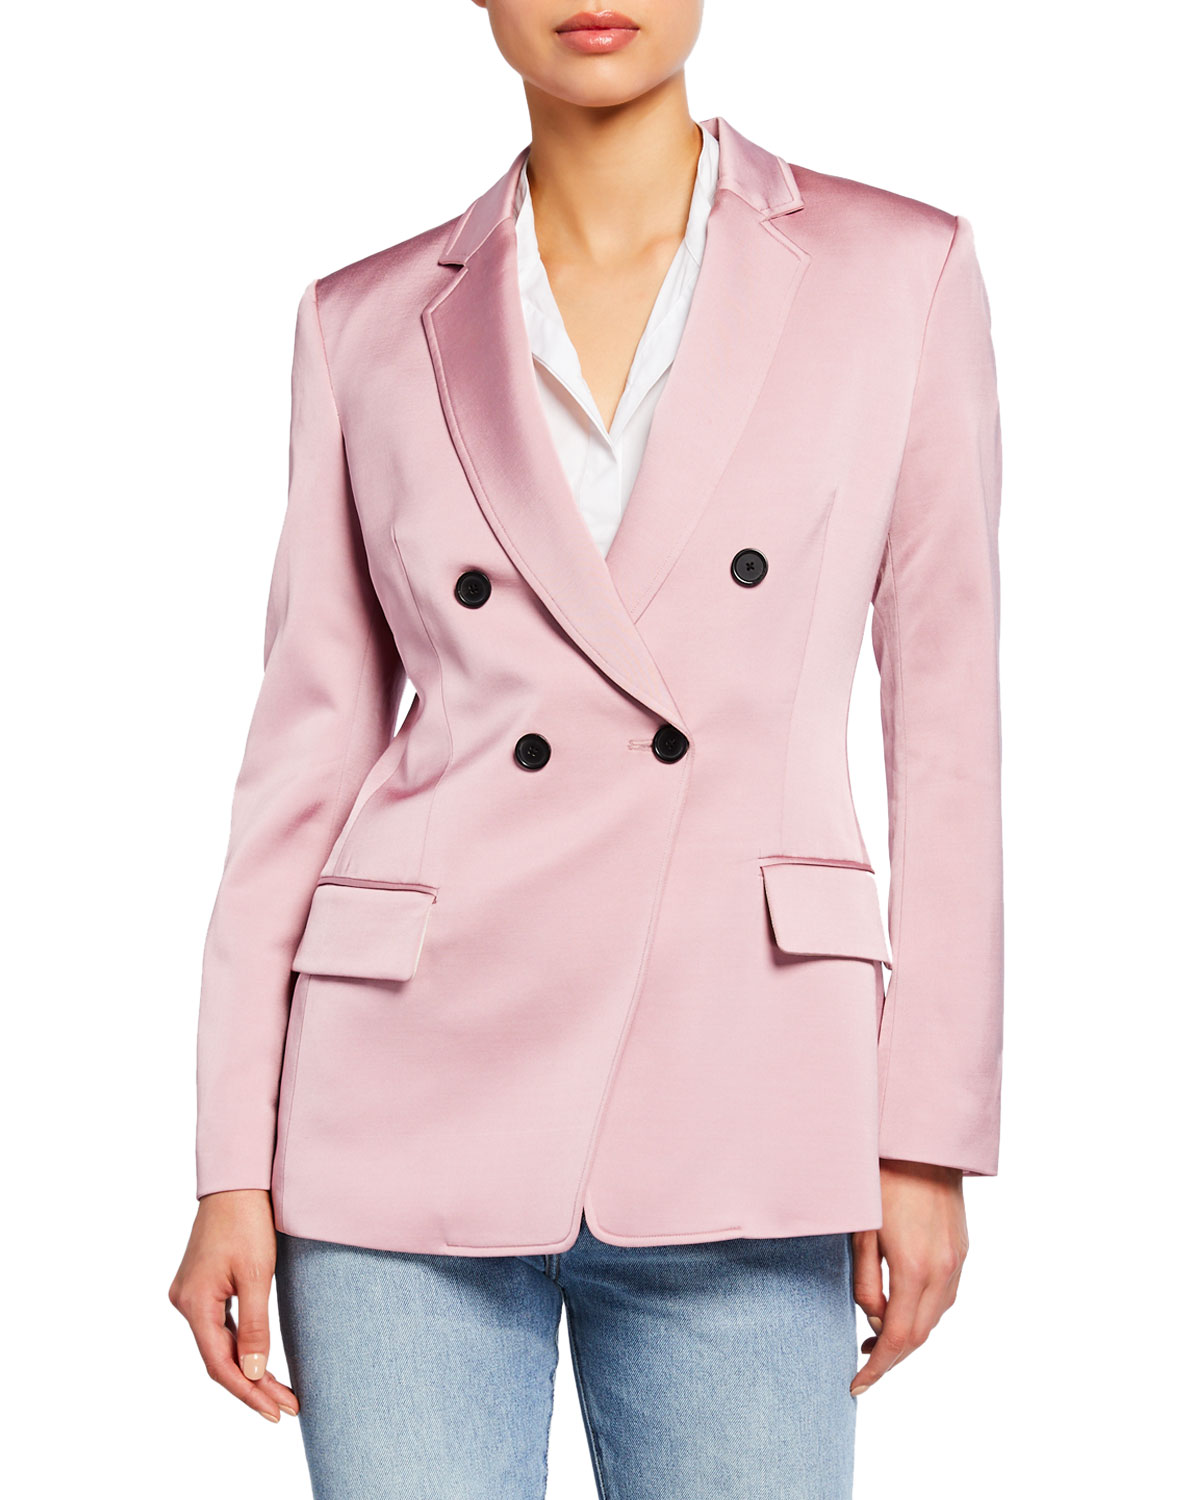 A.l.c Jackets SEDGEWICK DOUBLE-BREASTED SATIN JACKET